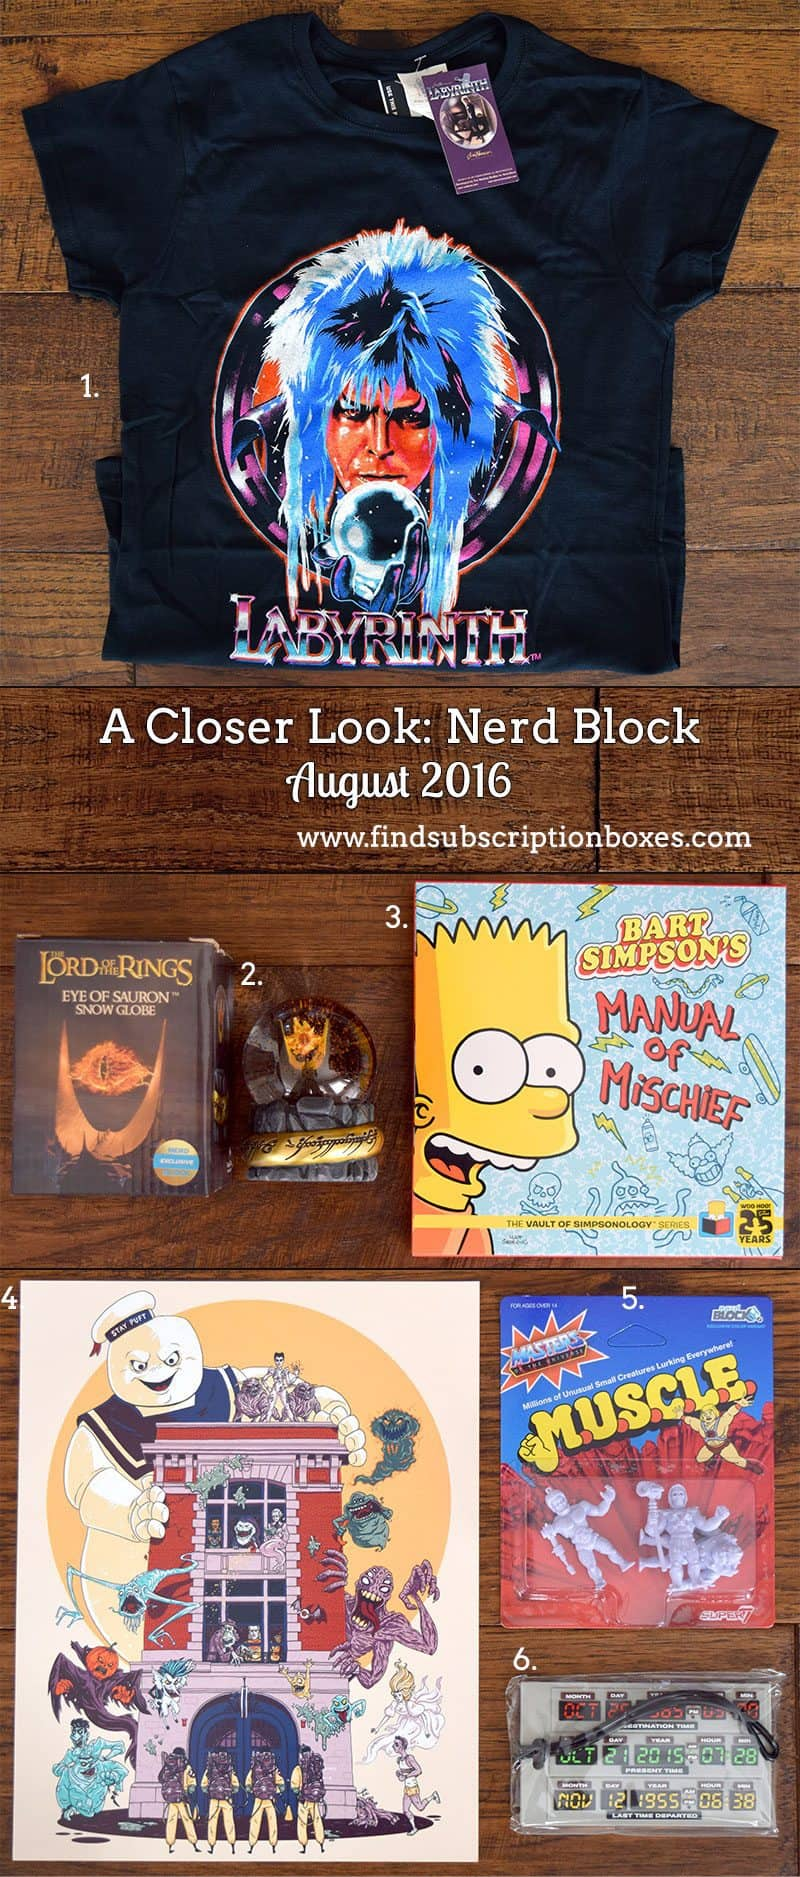 August 2016 Nerd Block Classic Review - Inside the Box